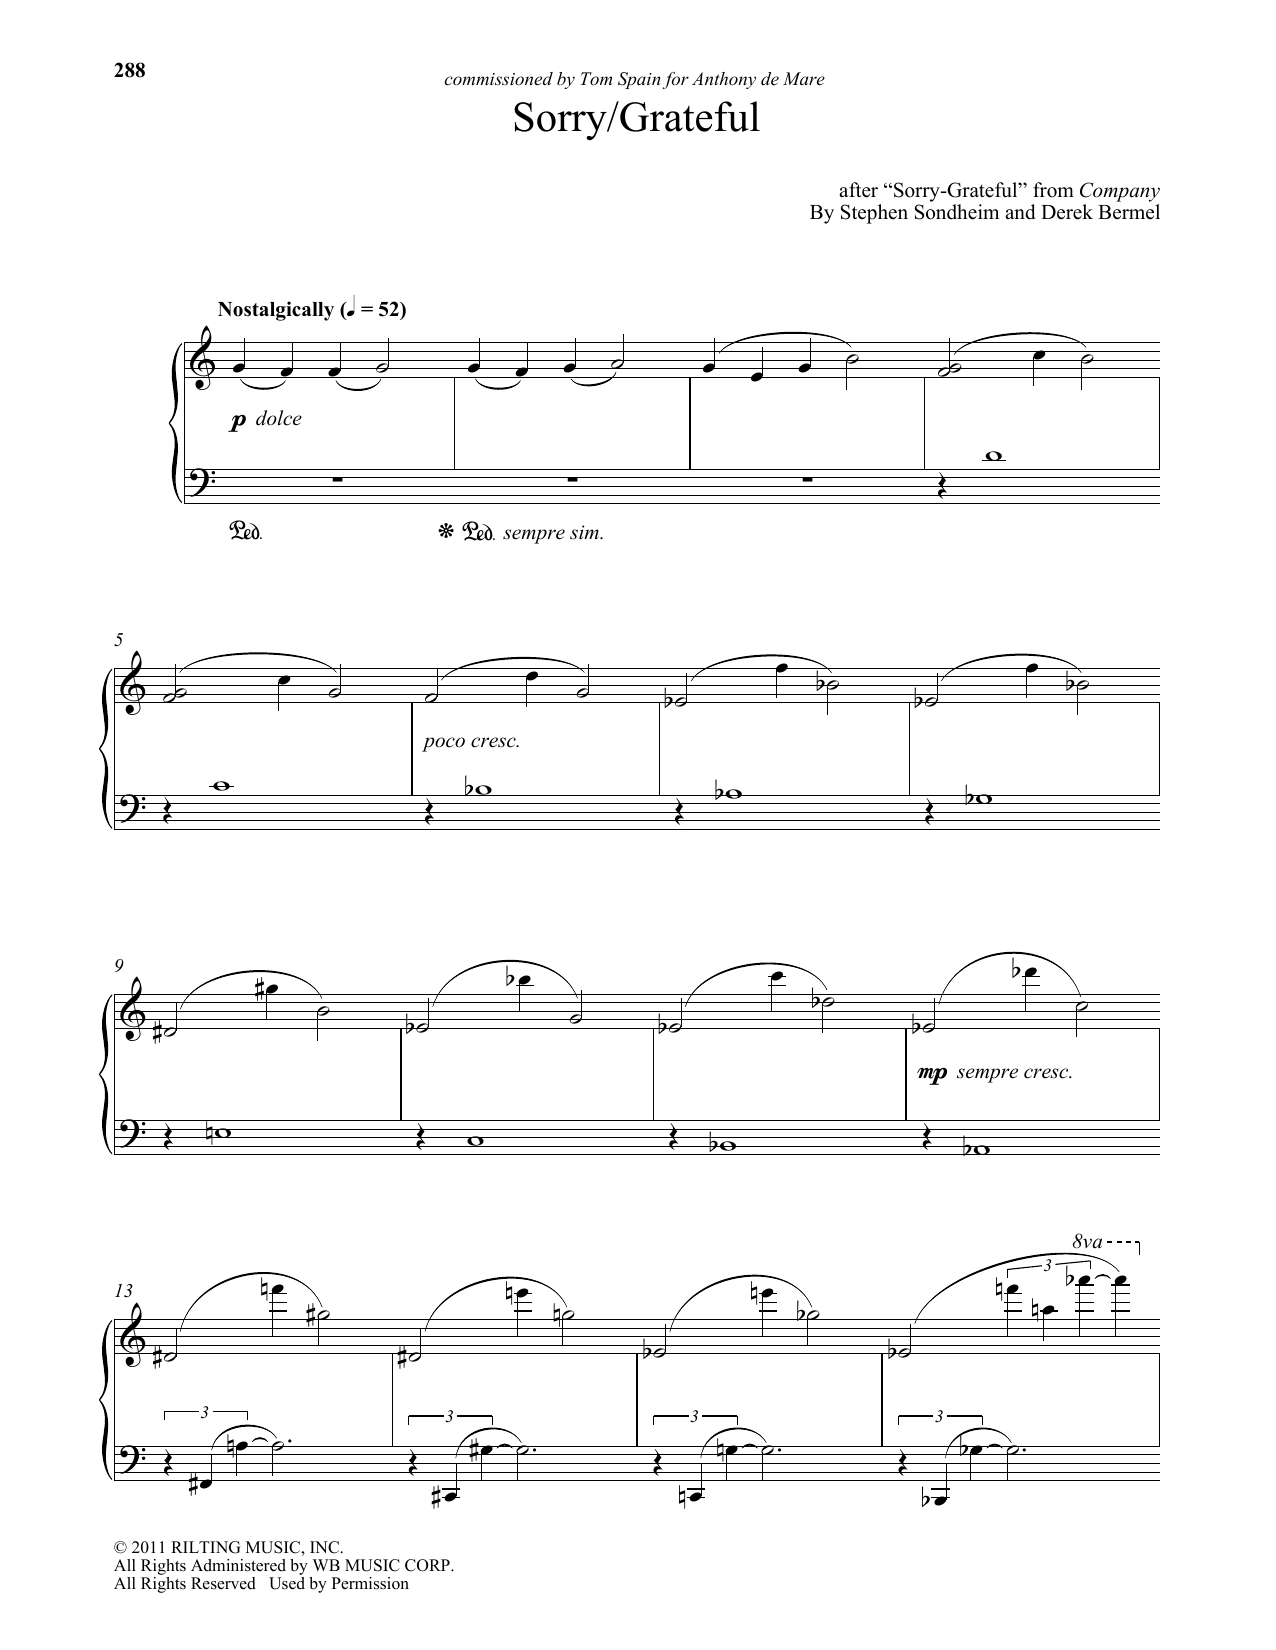 Download Stephen Sondheim 'Sorry - Grateful (arr. Derek Bermel)' Digital Sheet Music Notes & Chords and start playing in minutes